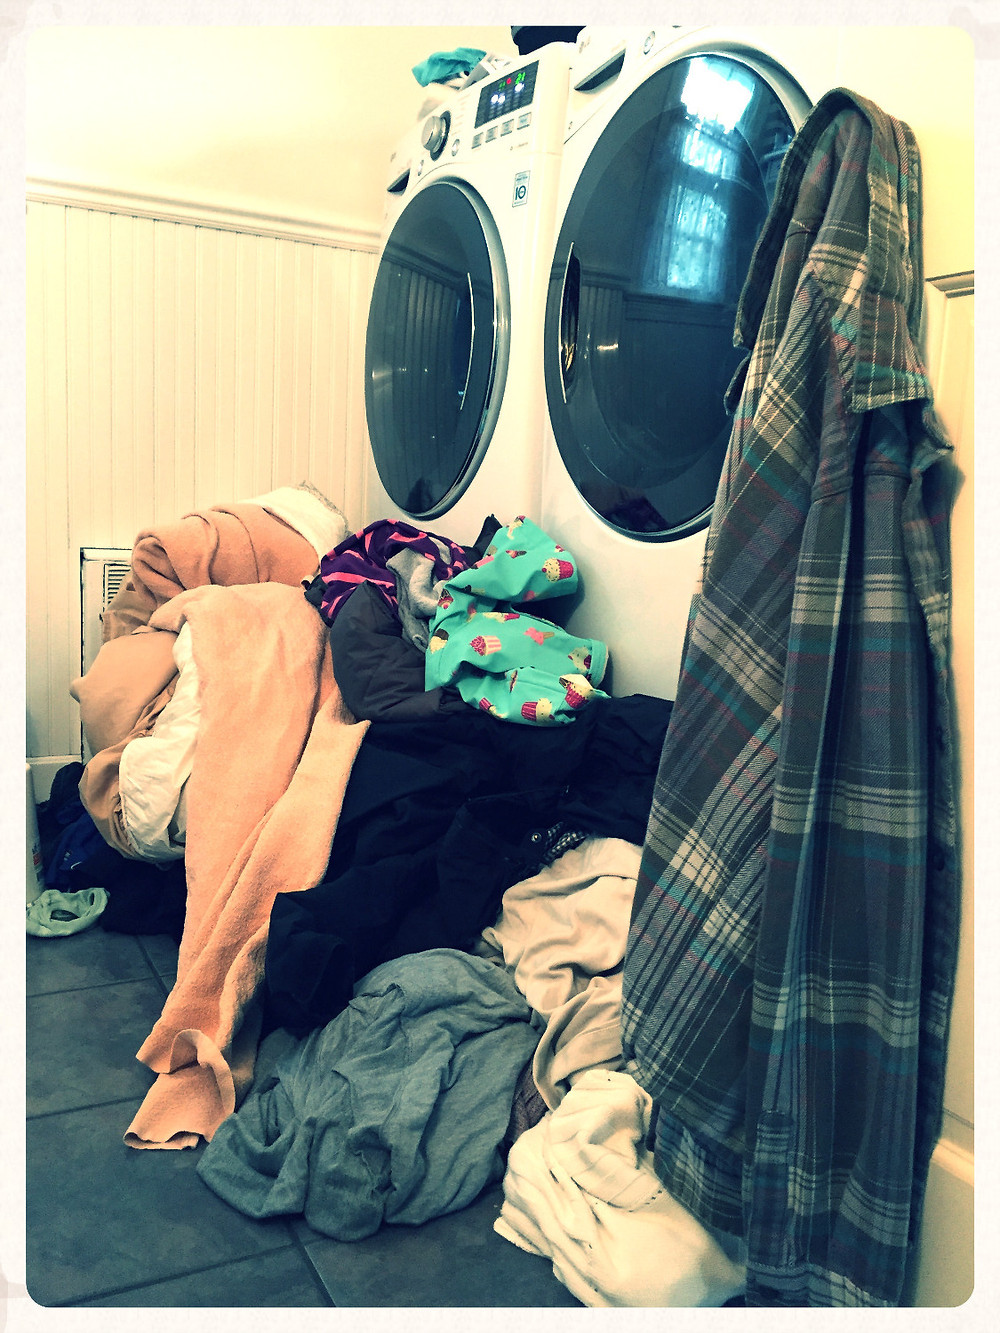 Laundry room piled with clothes to be washed.